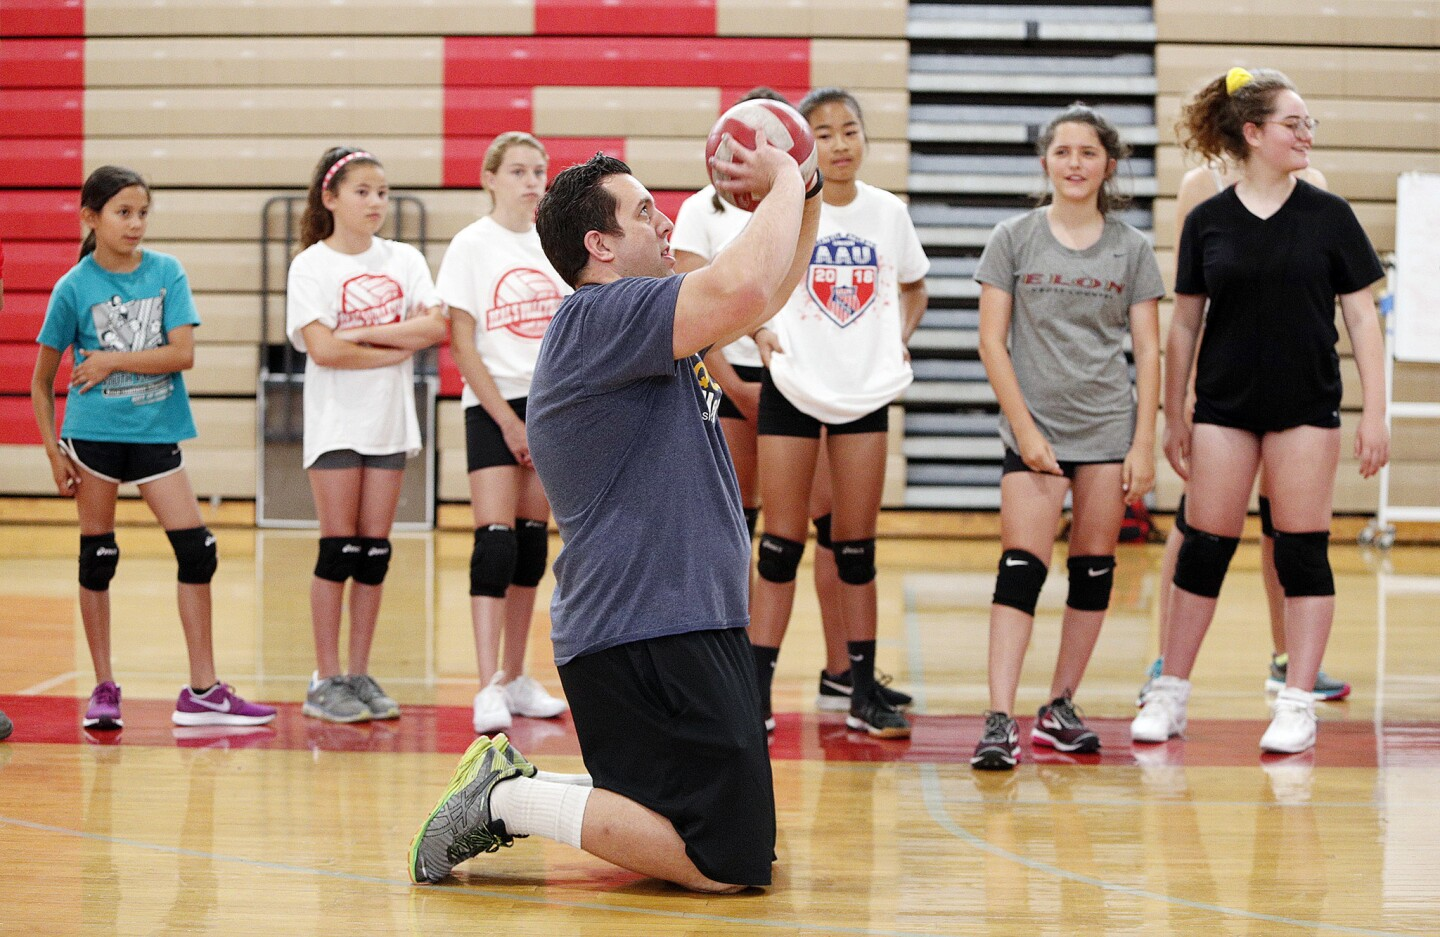 Photo Gallery: Volleyball camp at Burroughs High School